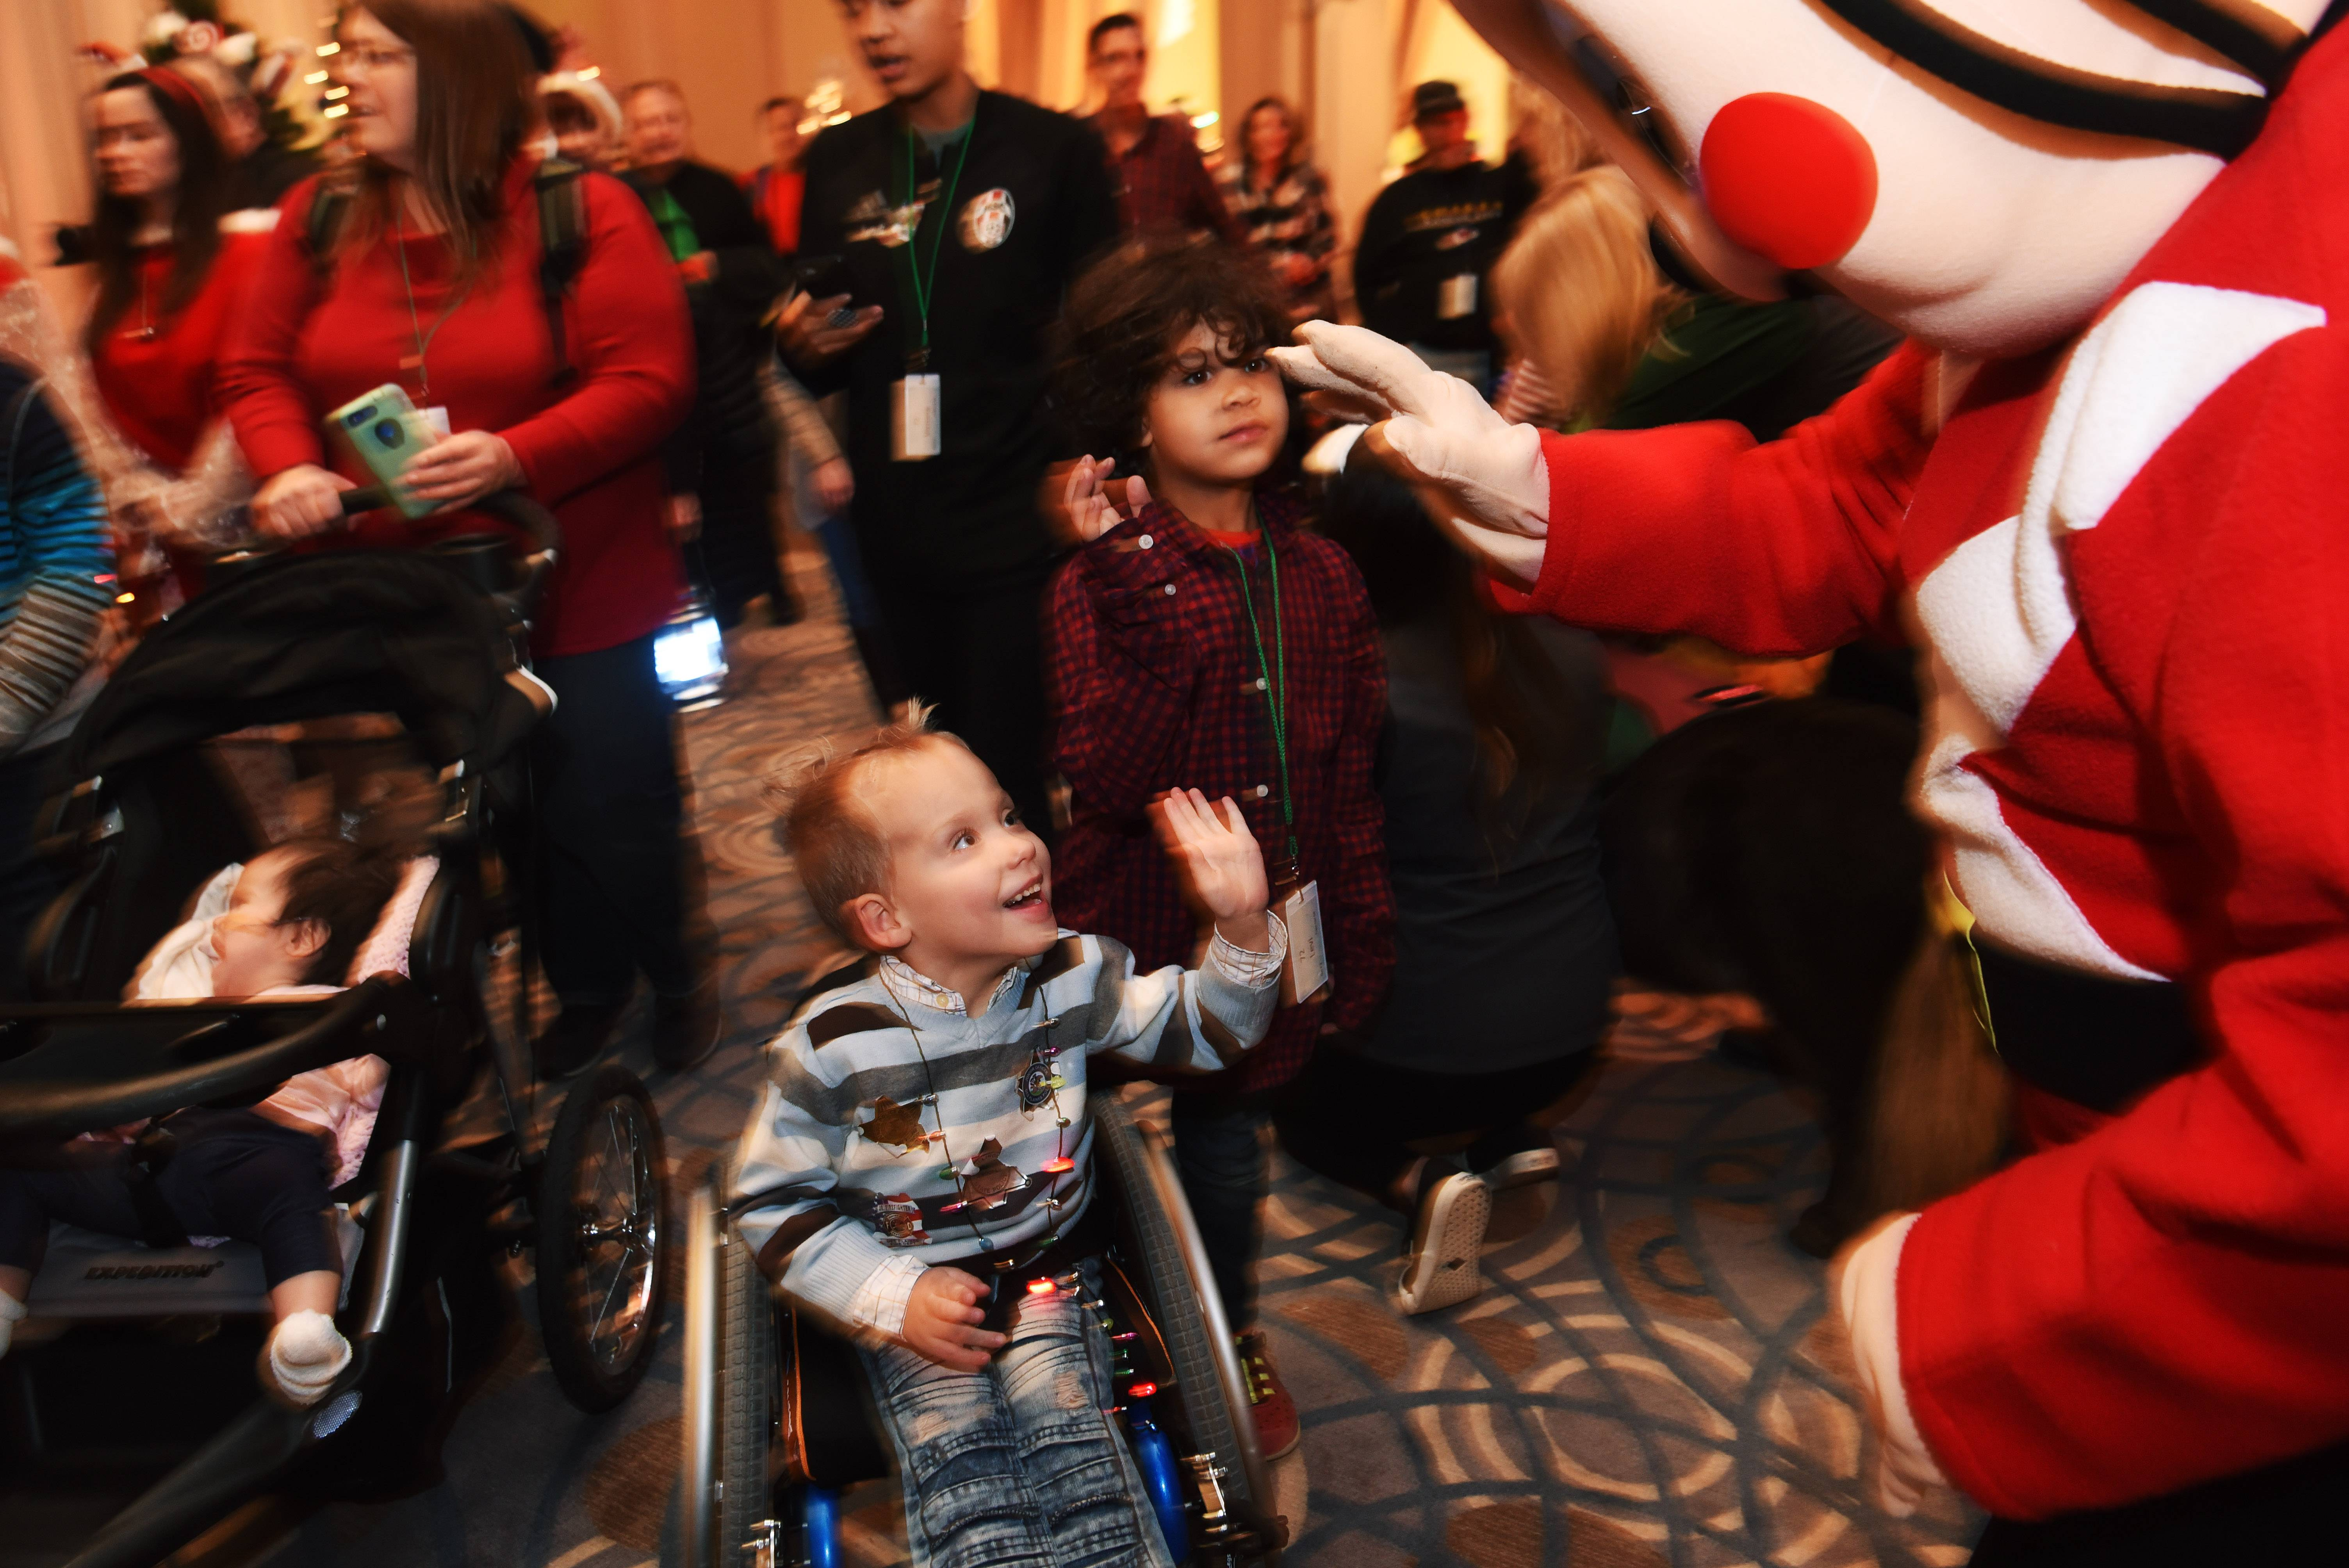 Isaac Yundt, 4, front, and his brother Levi, 6, of Poplar Grove are greeted as they make their entrance into the Operation North Pole holiday event at the Donald E. Stephens Convention Center in Rosemont Saturday.